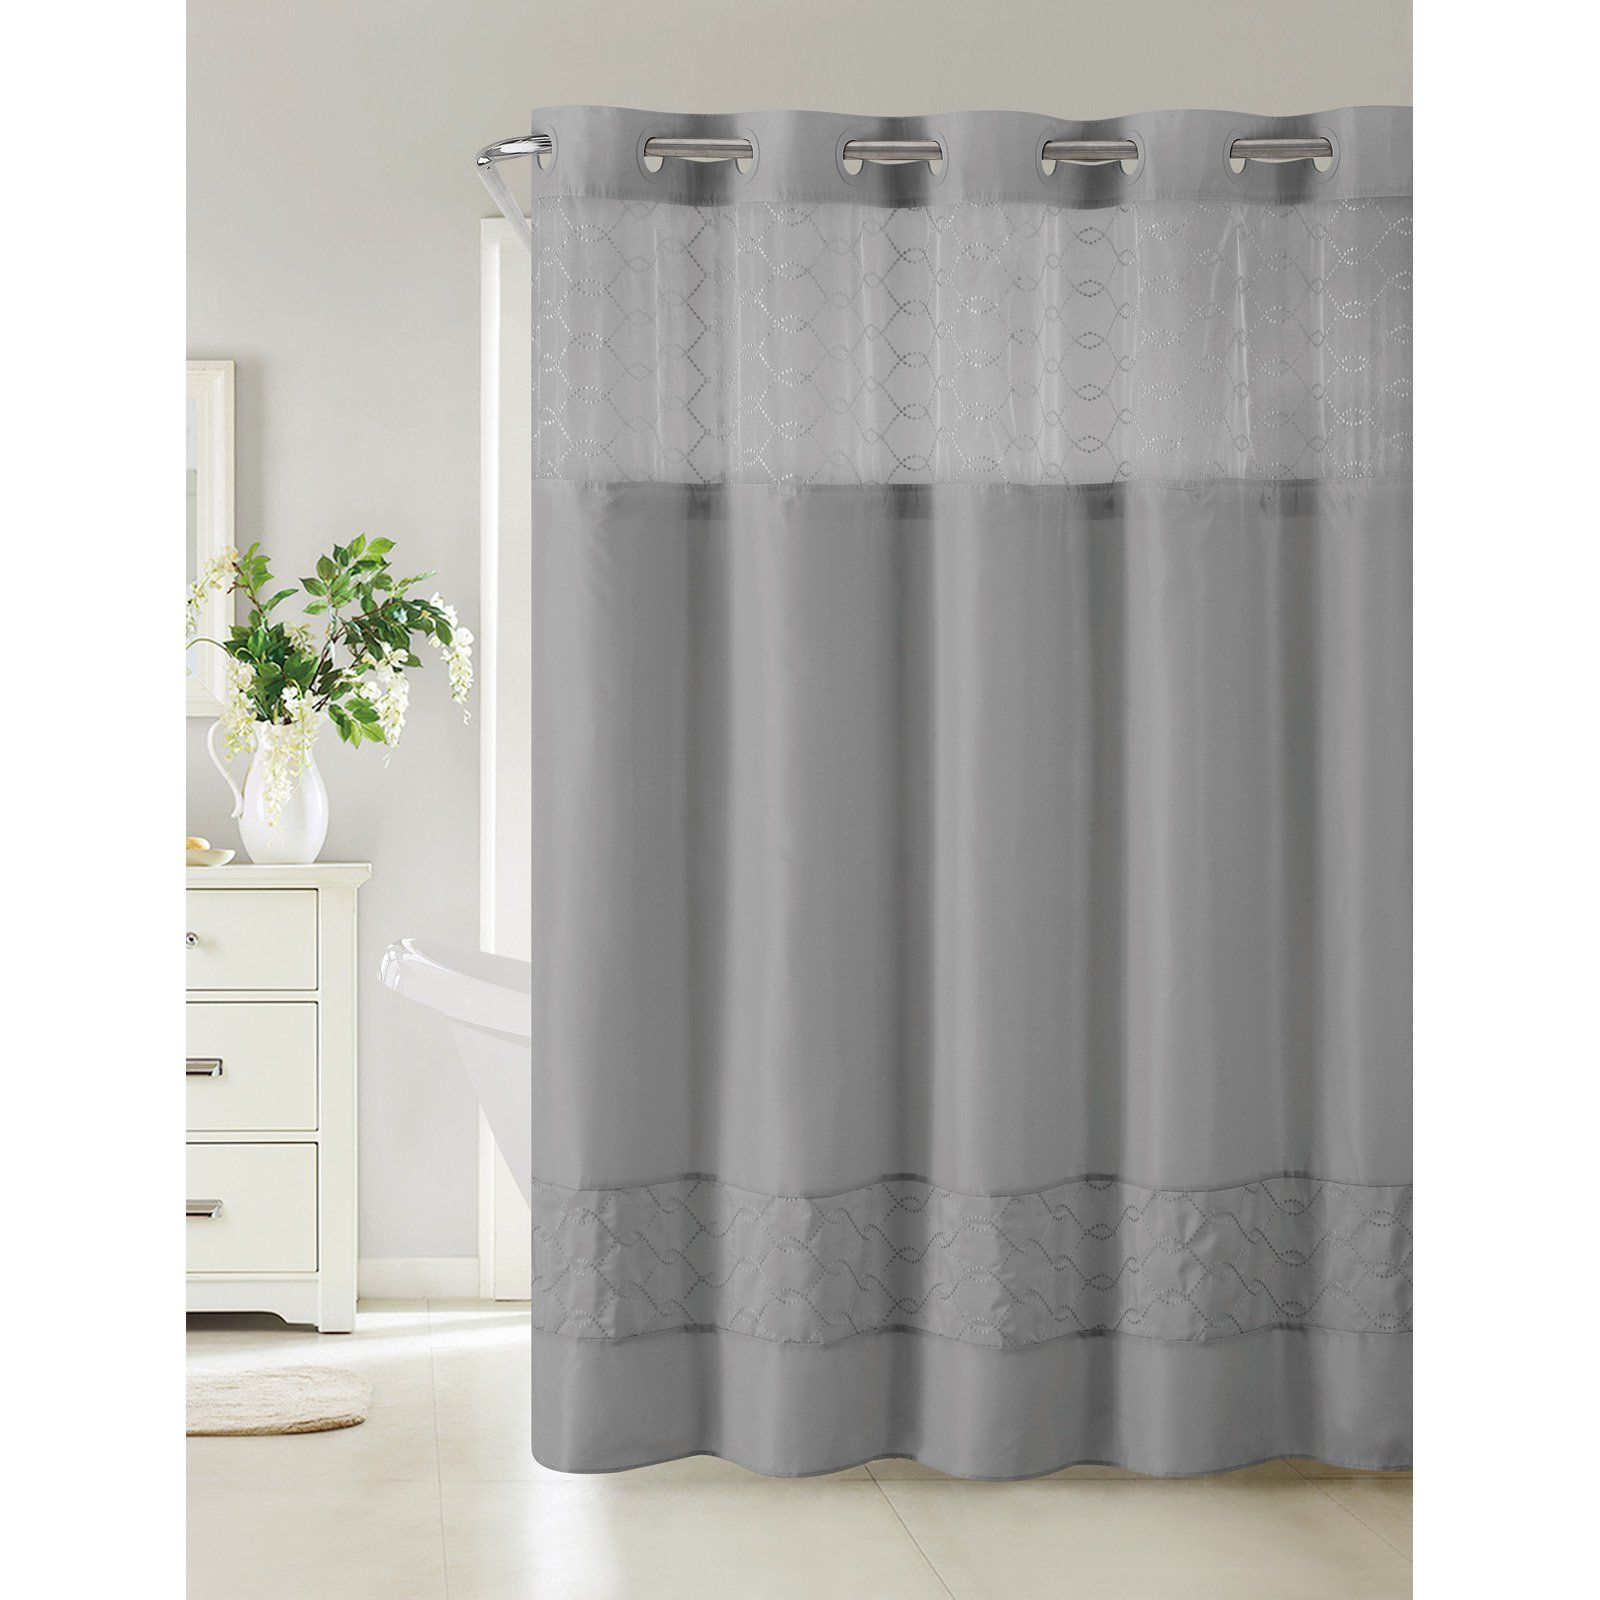 Hookless Downtown Soho Polyester Shower Curtain Slate Gray Shower Curtains Hookless Shower Curtain Shower Curtain